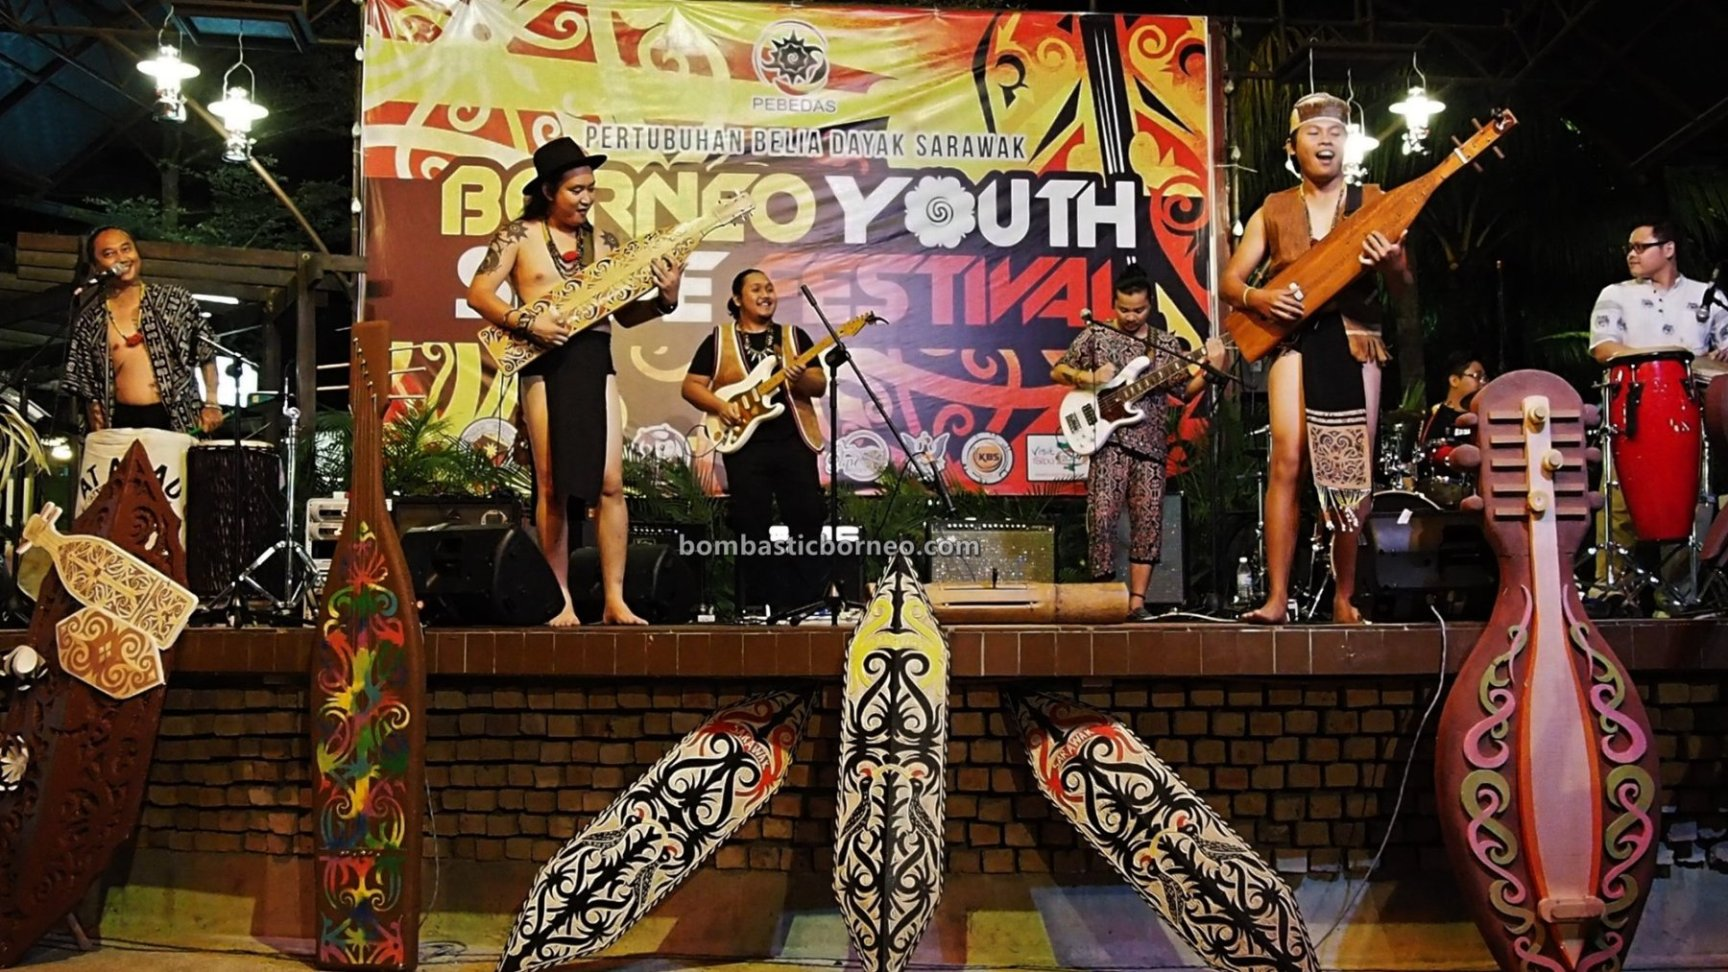 Borneo Youth Sape Festival, authentic, traditional, backpackers, event, native, tribal, orang ulu, One Malaysia Cultural Village, Tourism, tourist attraction, travel guide, Trans Border, 婆罗洲达雅吉他, 砂拉越原住民音乐